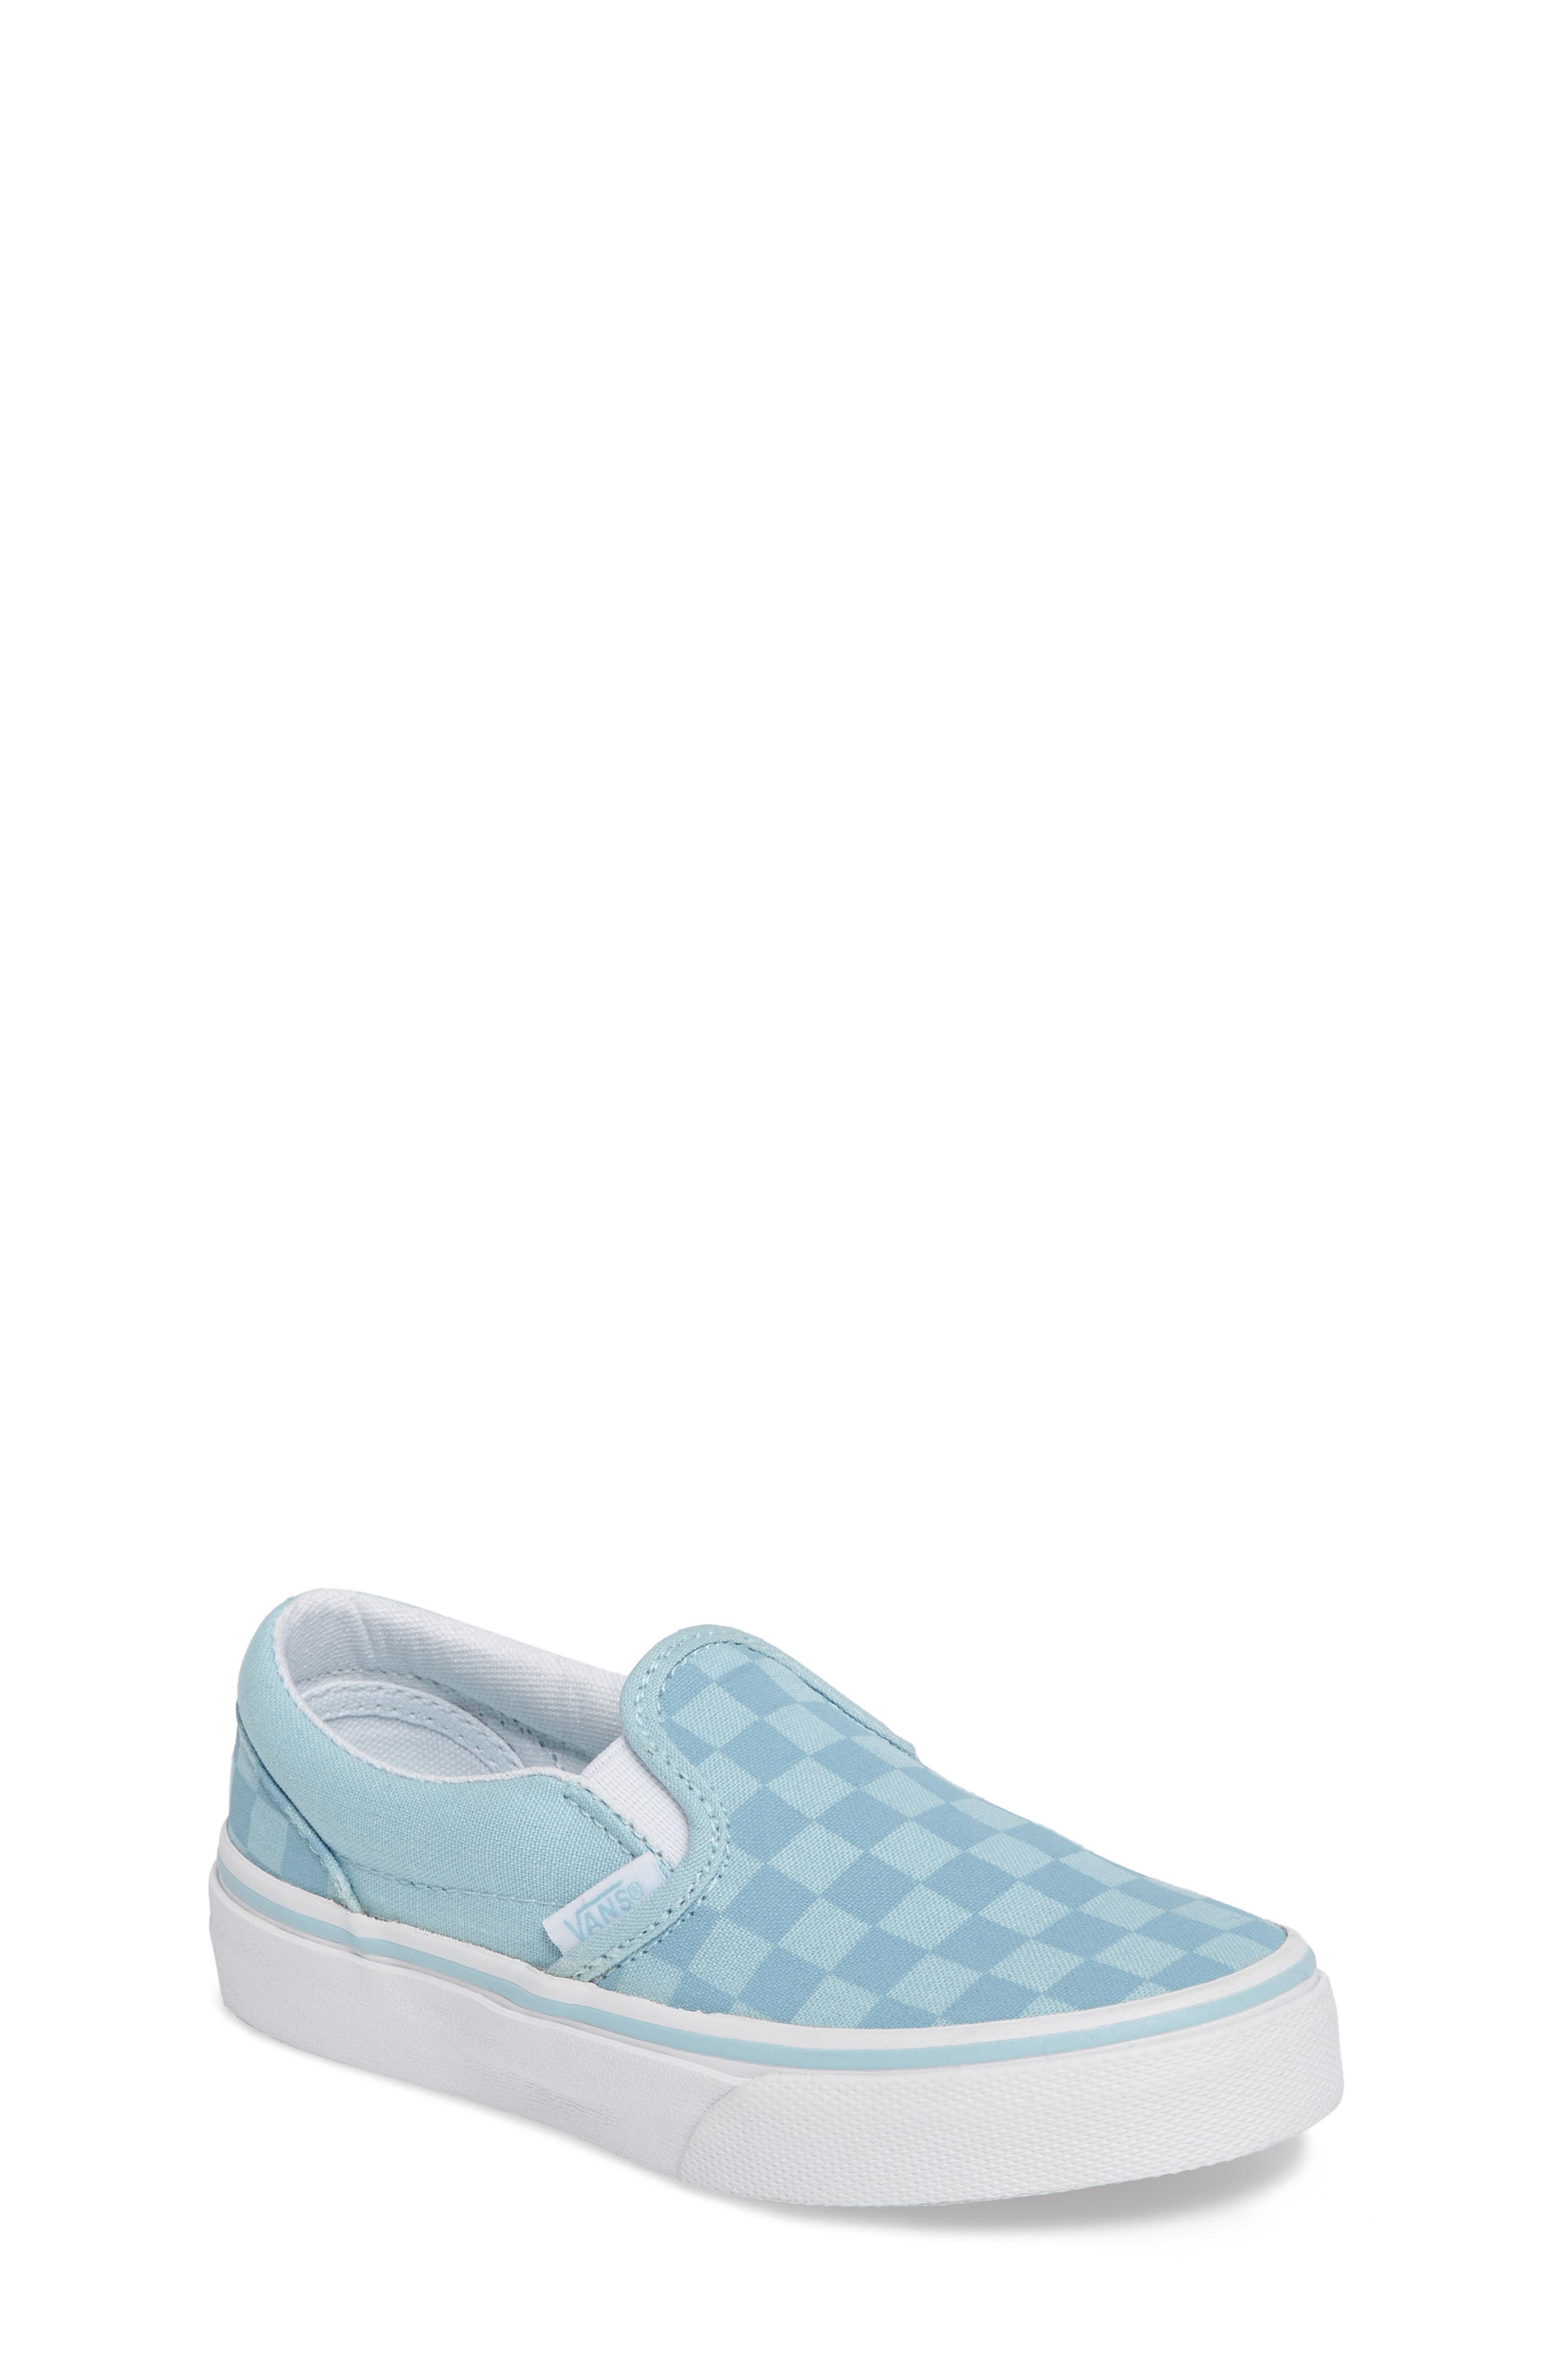 Classic Slip-On Sneaker,                         Main,                         color, Crystal Blue Tonal Check